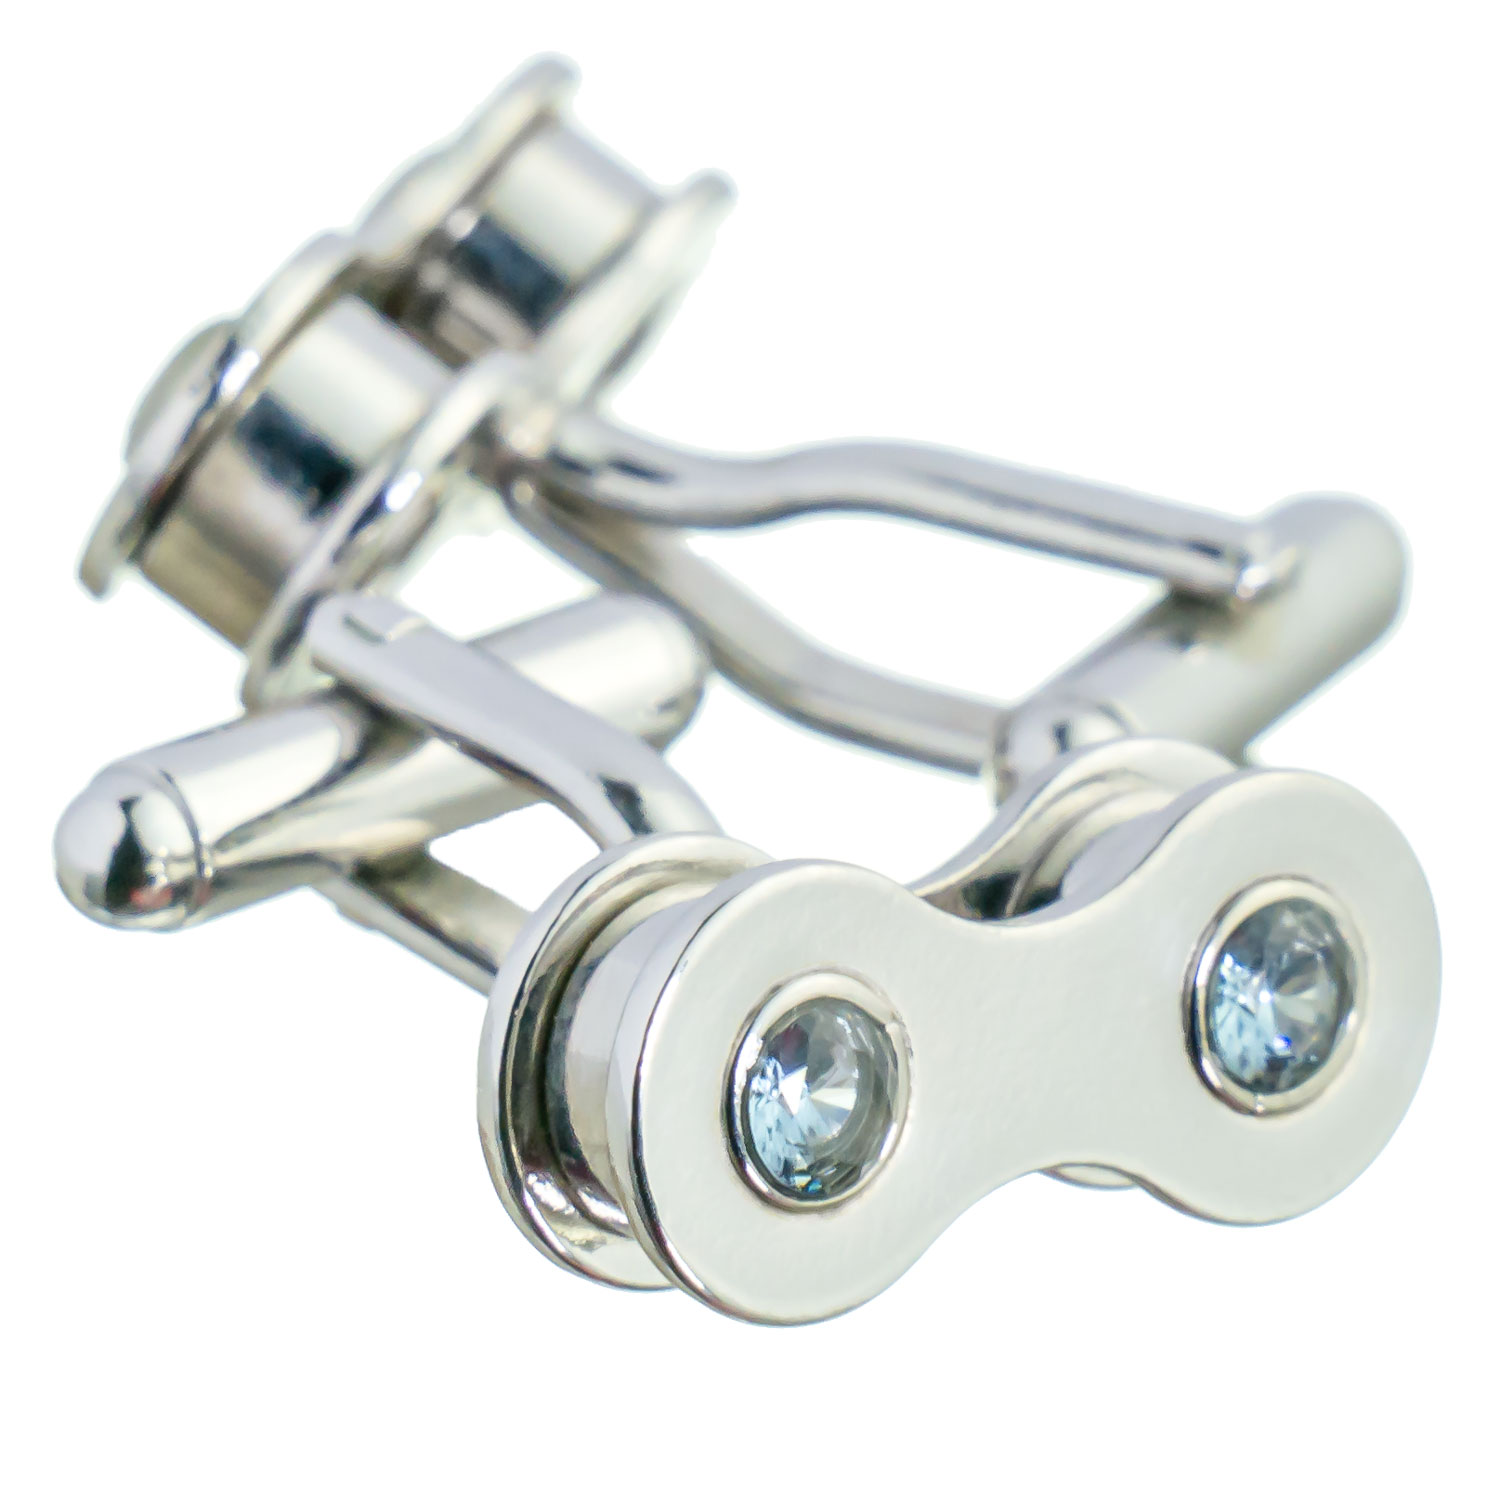 Silver bike chain cufflinks with aquamarine